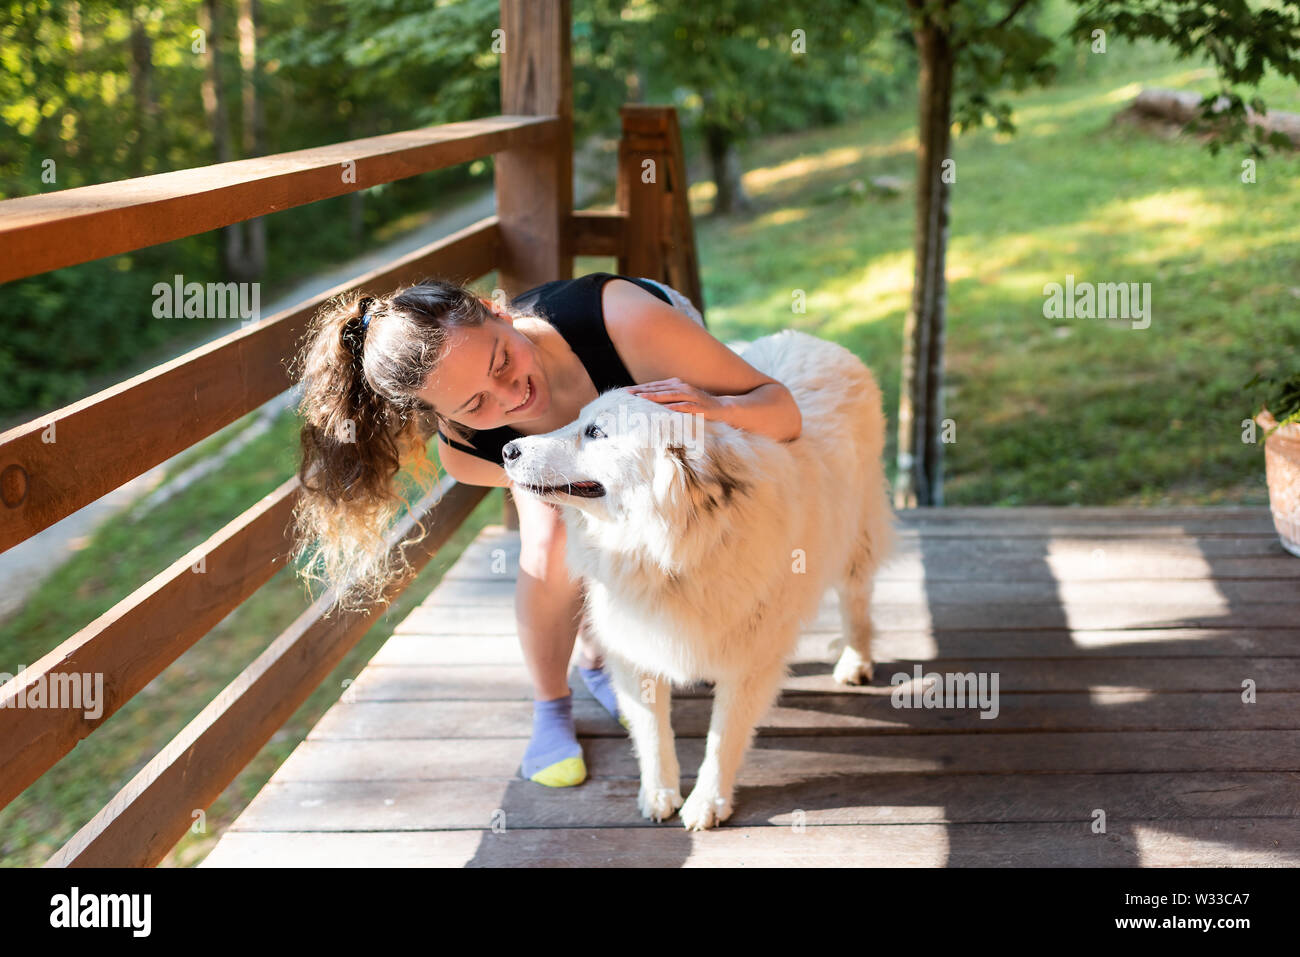 Young woman petting one happy white great pyrenees dogs outside at home porch of log cabin - Stock Image